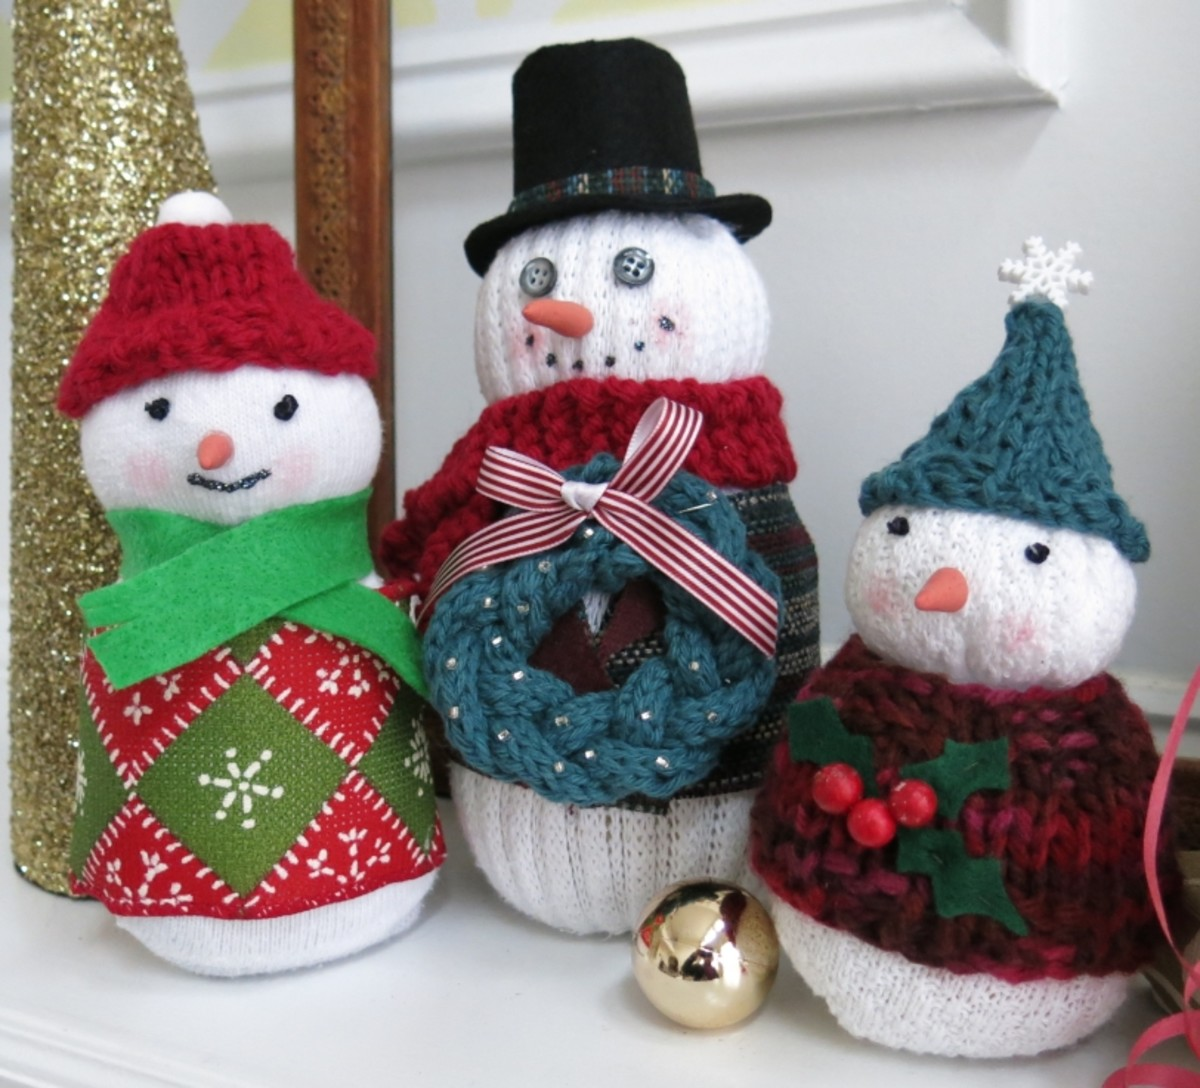 How to Make a Sock Snowman Family